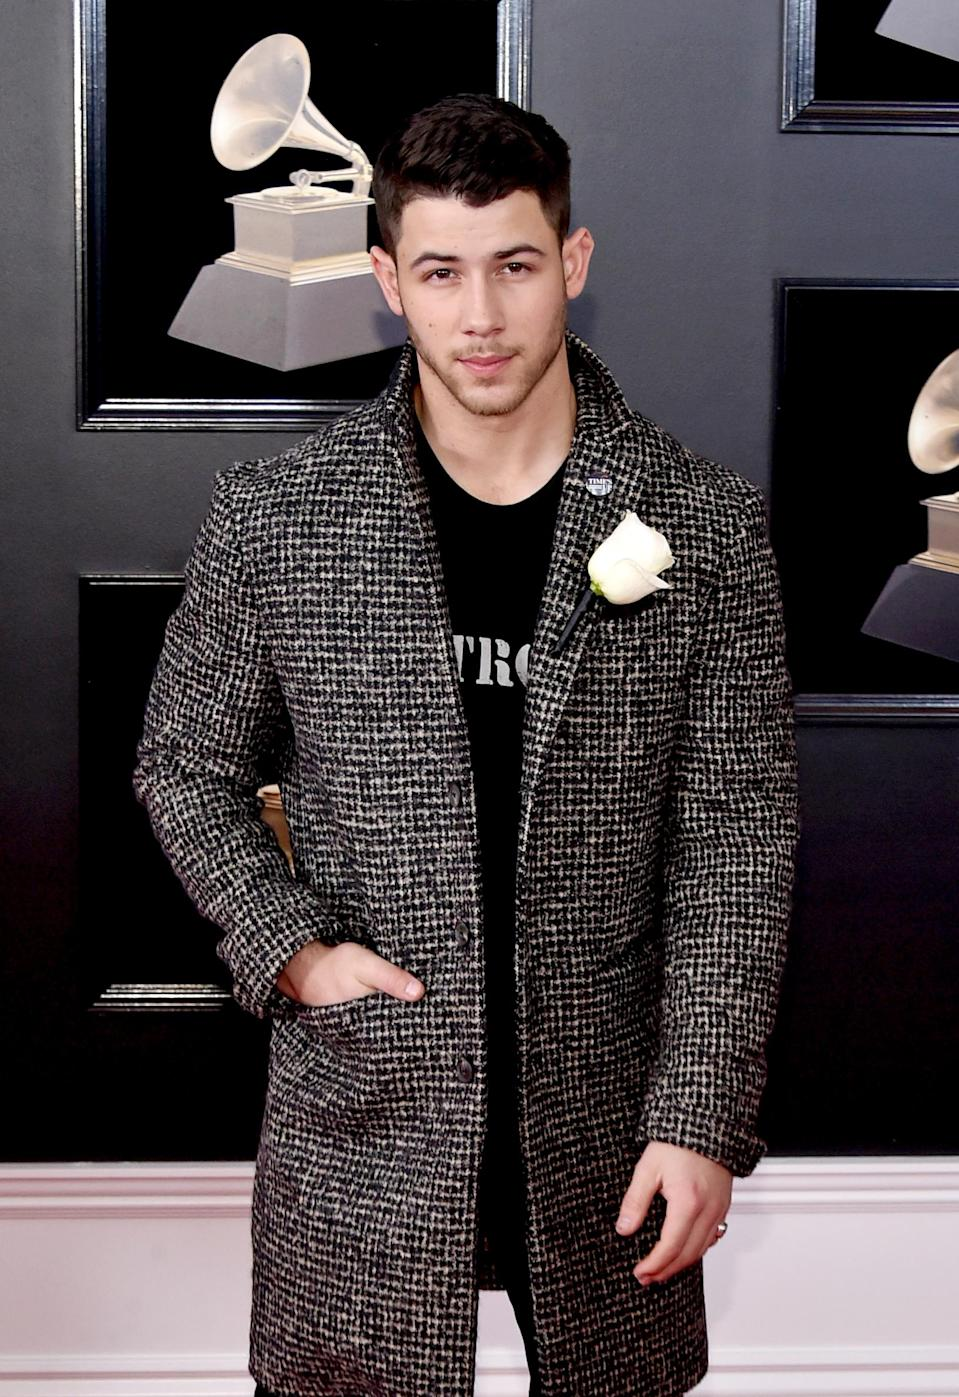 Nick Jonas attends the 60th Annual Grammy Awards. (Photo: Getty Images)